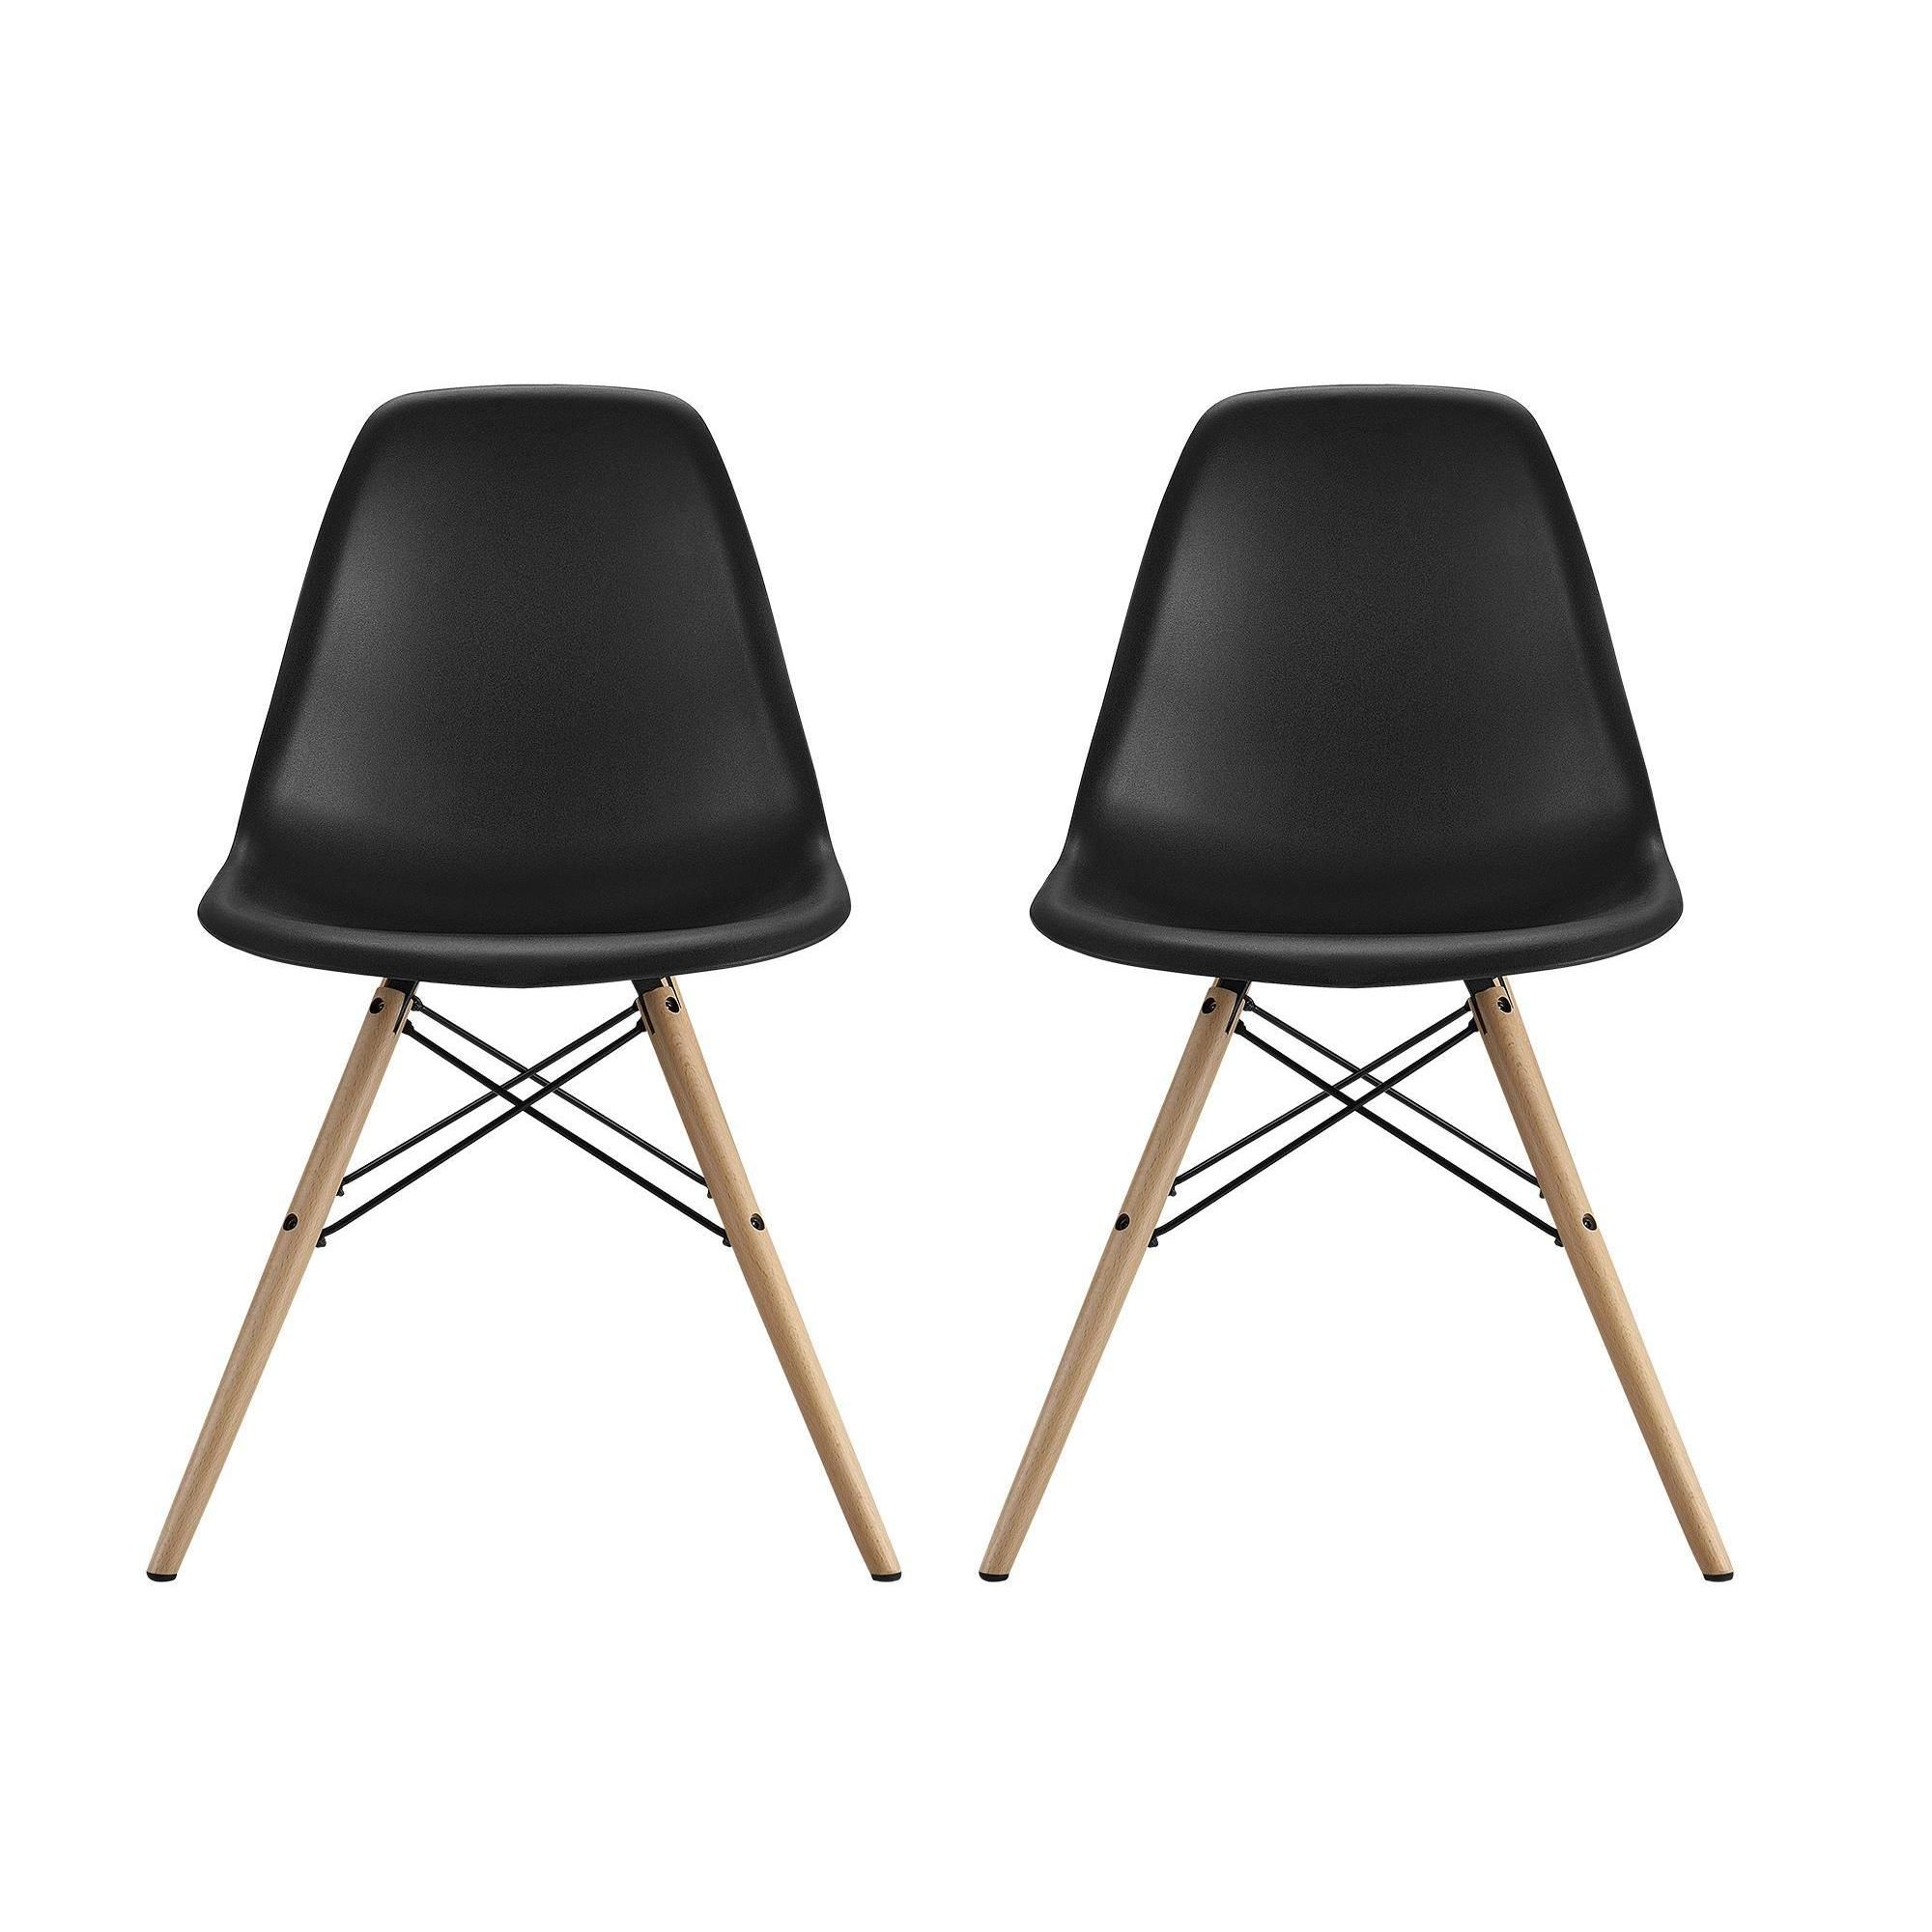 Iconic Modern Furniture The Replica Molded Chair With Wood Legs Are Modeled After Eames